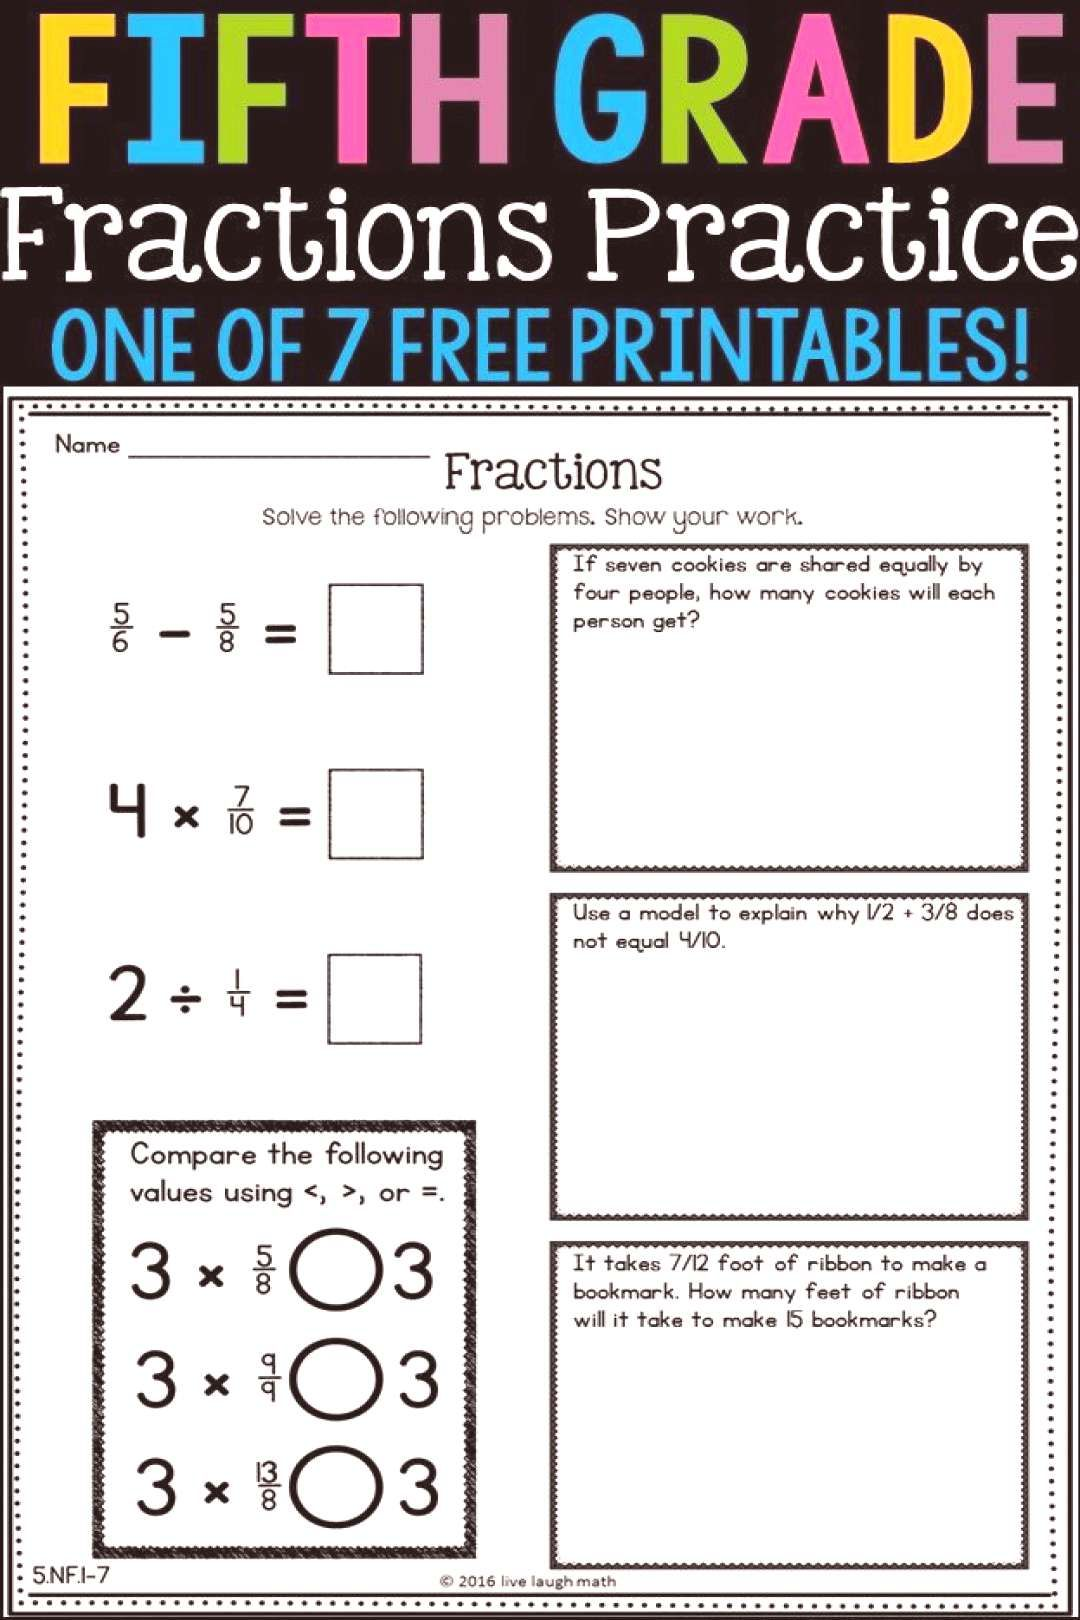 Free Fifth Grade Fractions Printable Can Be Used As Daily